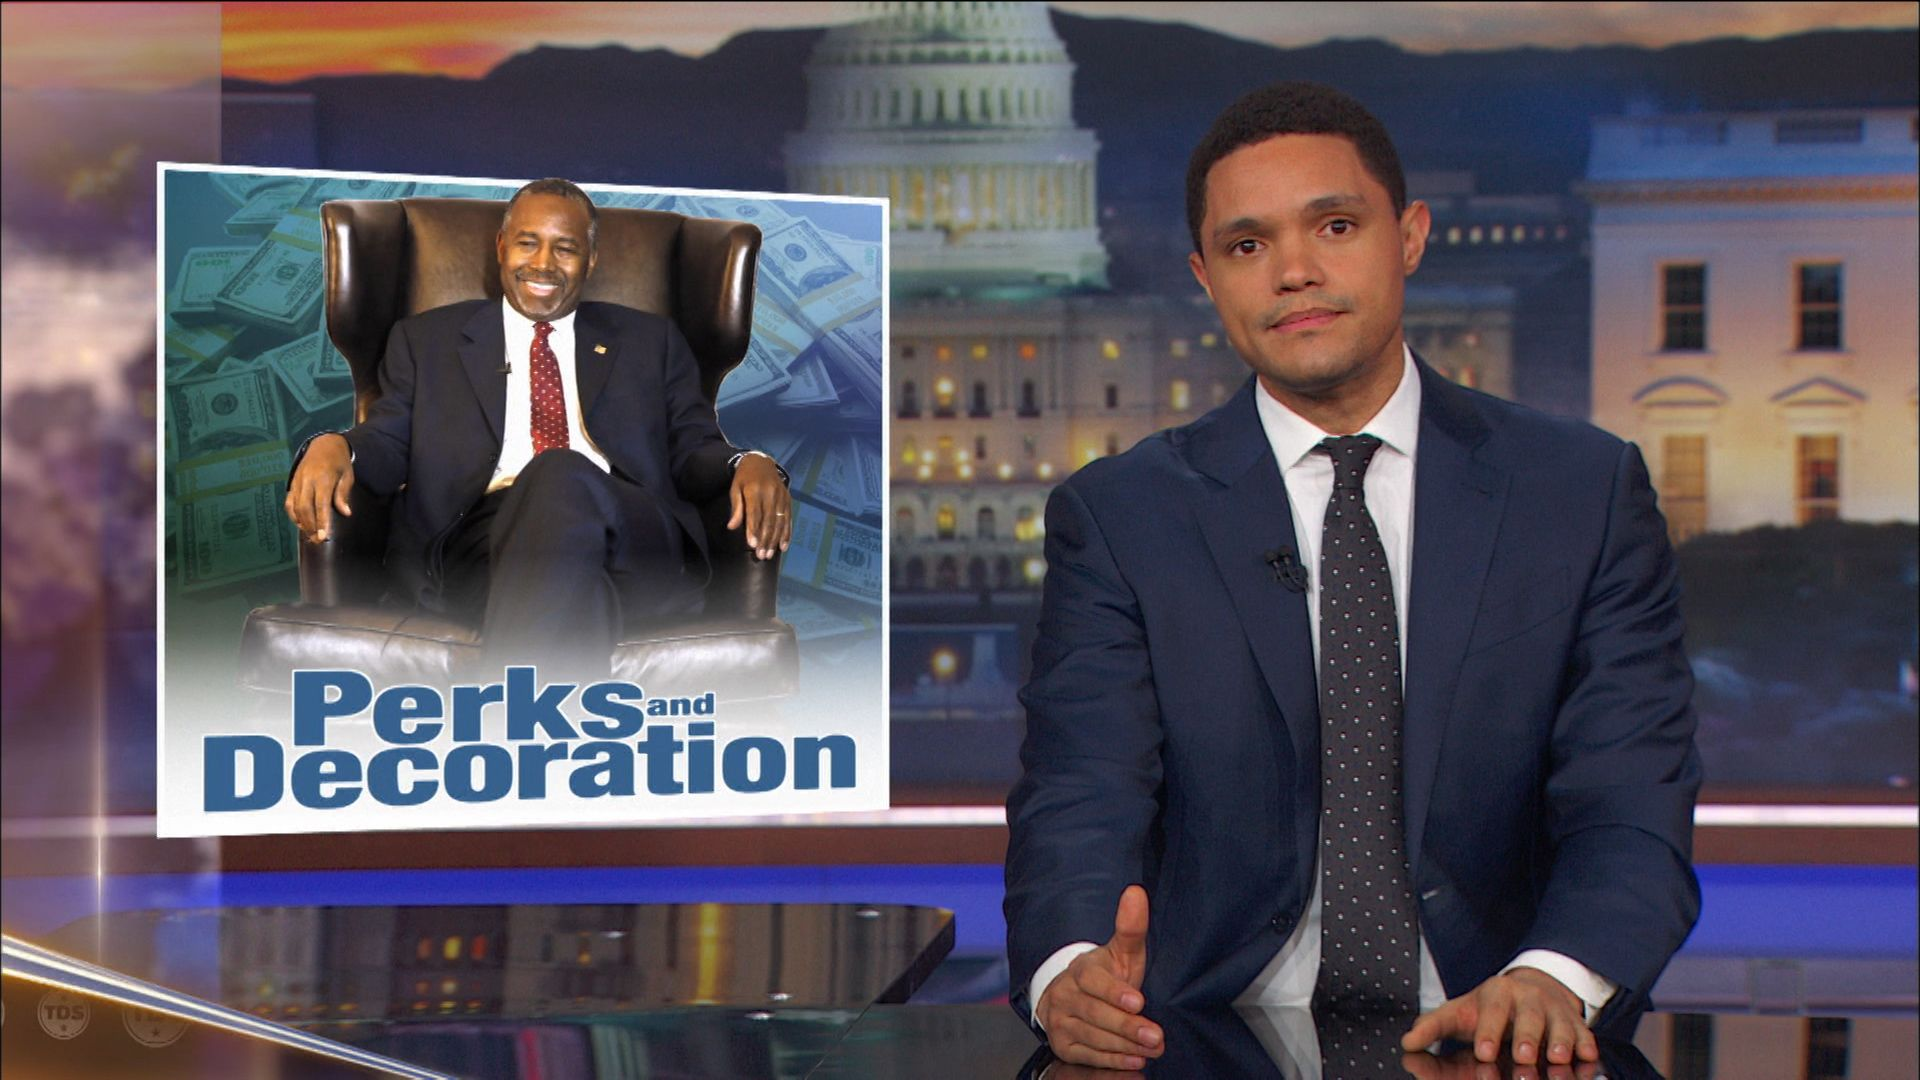 Ben Carson Is Up to Some Shady S**t at HUD - The Daily Show with Trevor Noah (Video Clip)